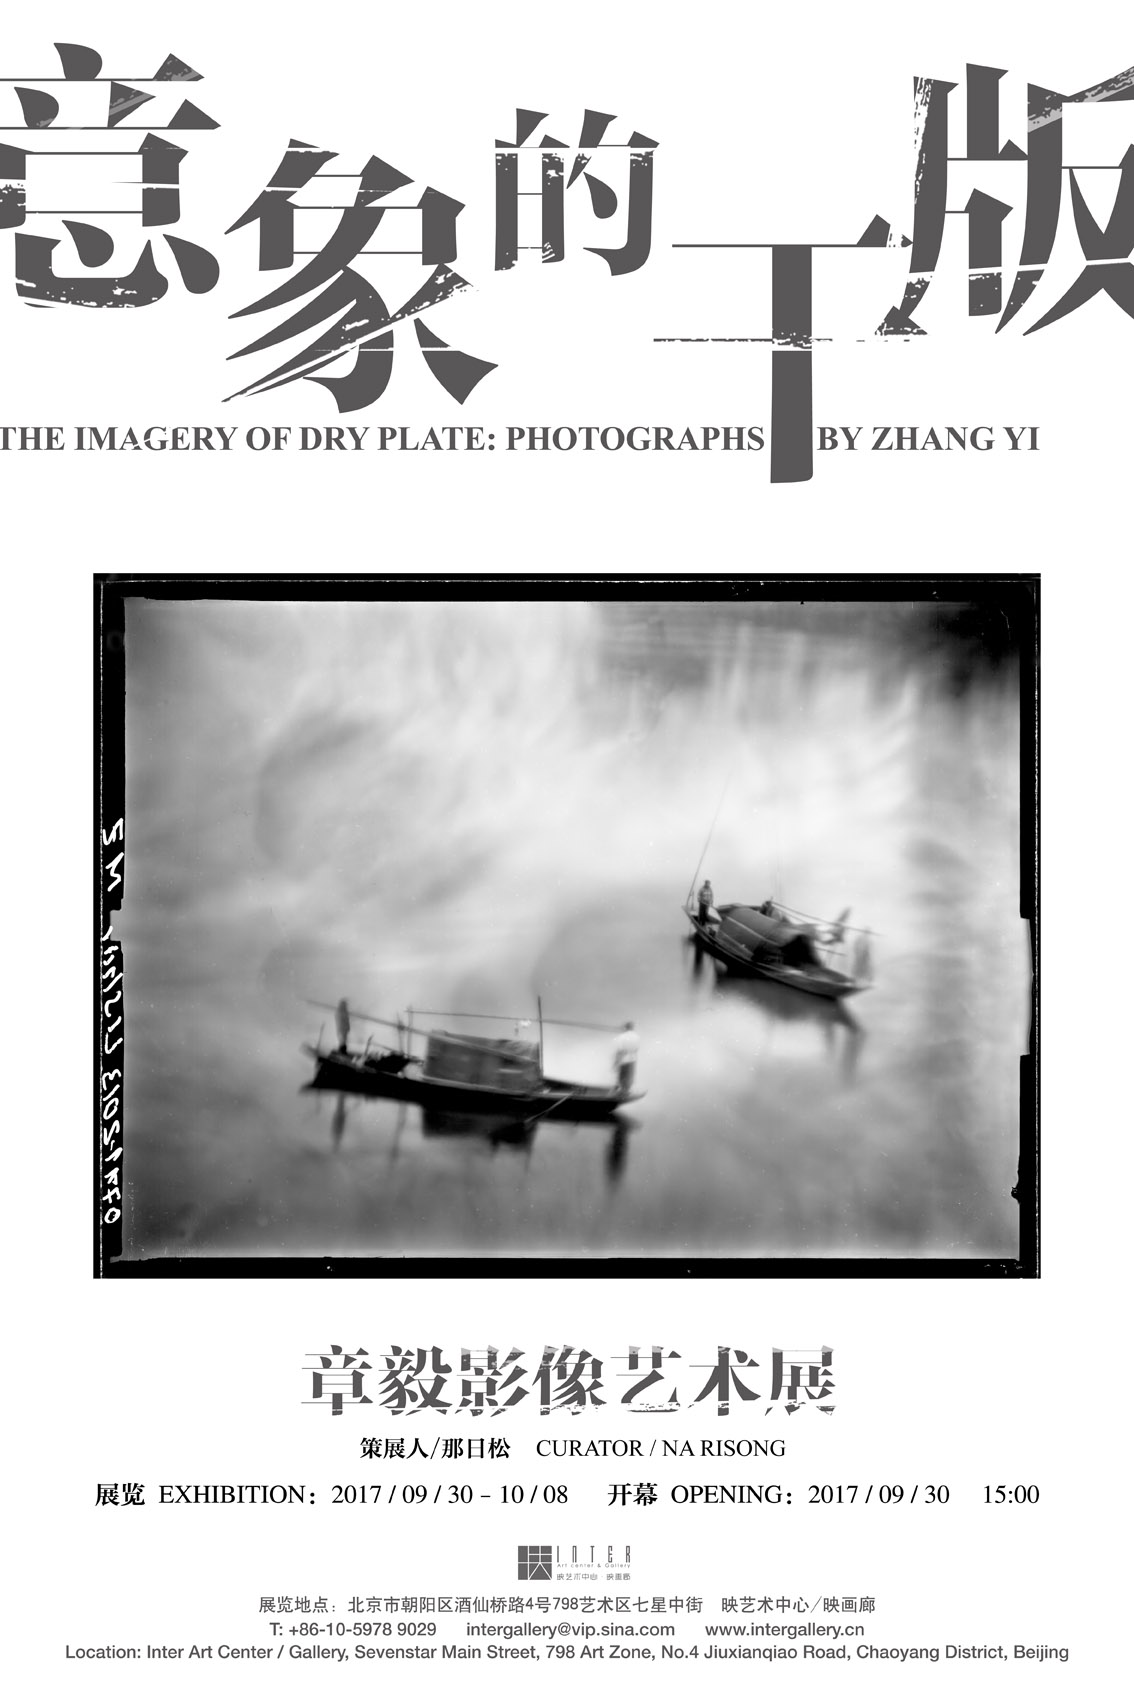 The Imagery of Dry Plate: Photographs by Zhang Yi (Maxime Zhang)